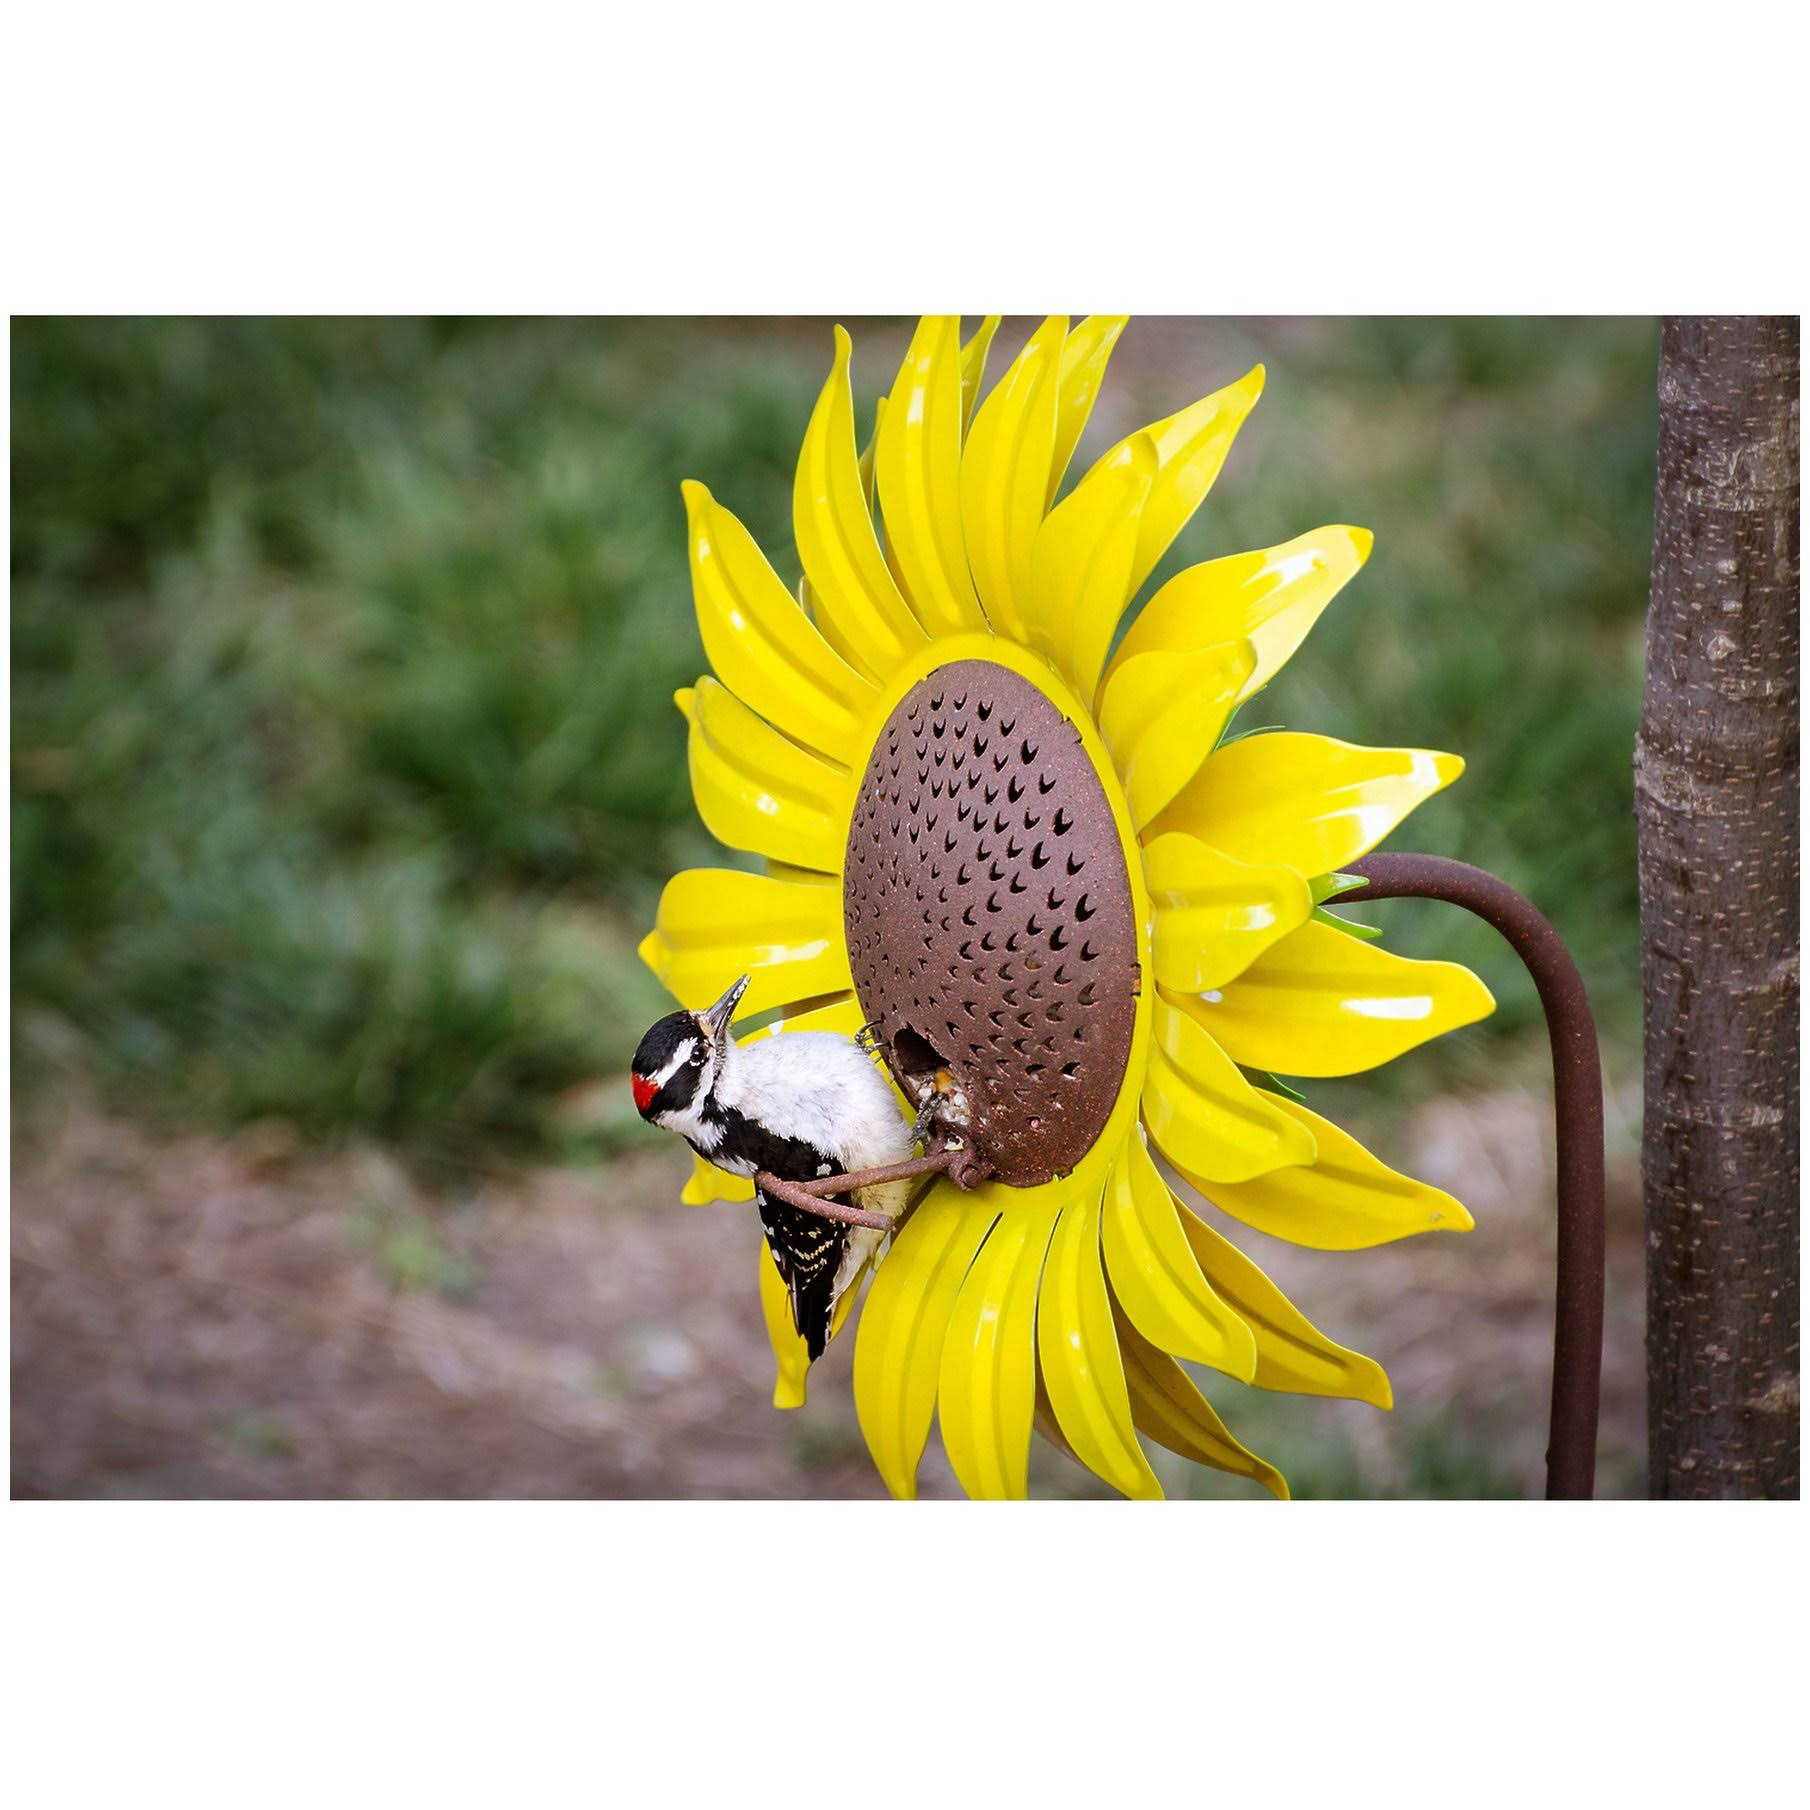 Desert Steel Sunflower Bird Feeder - Yellow, 42""